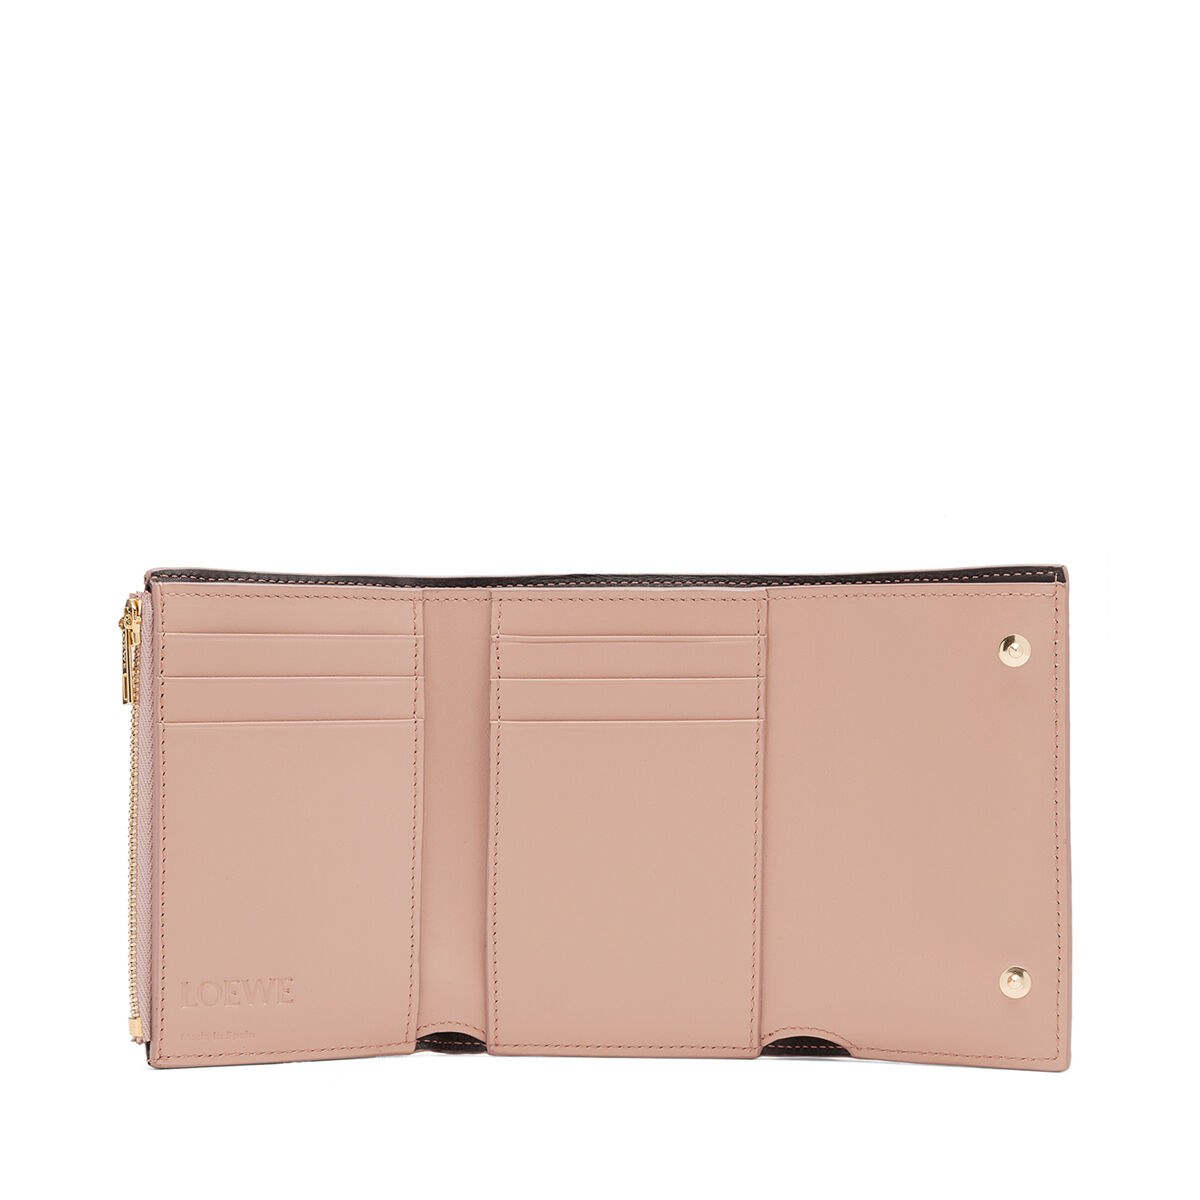 LOEWE Small Vertical Wallet Blush all